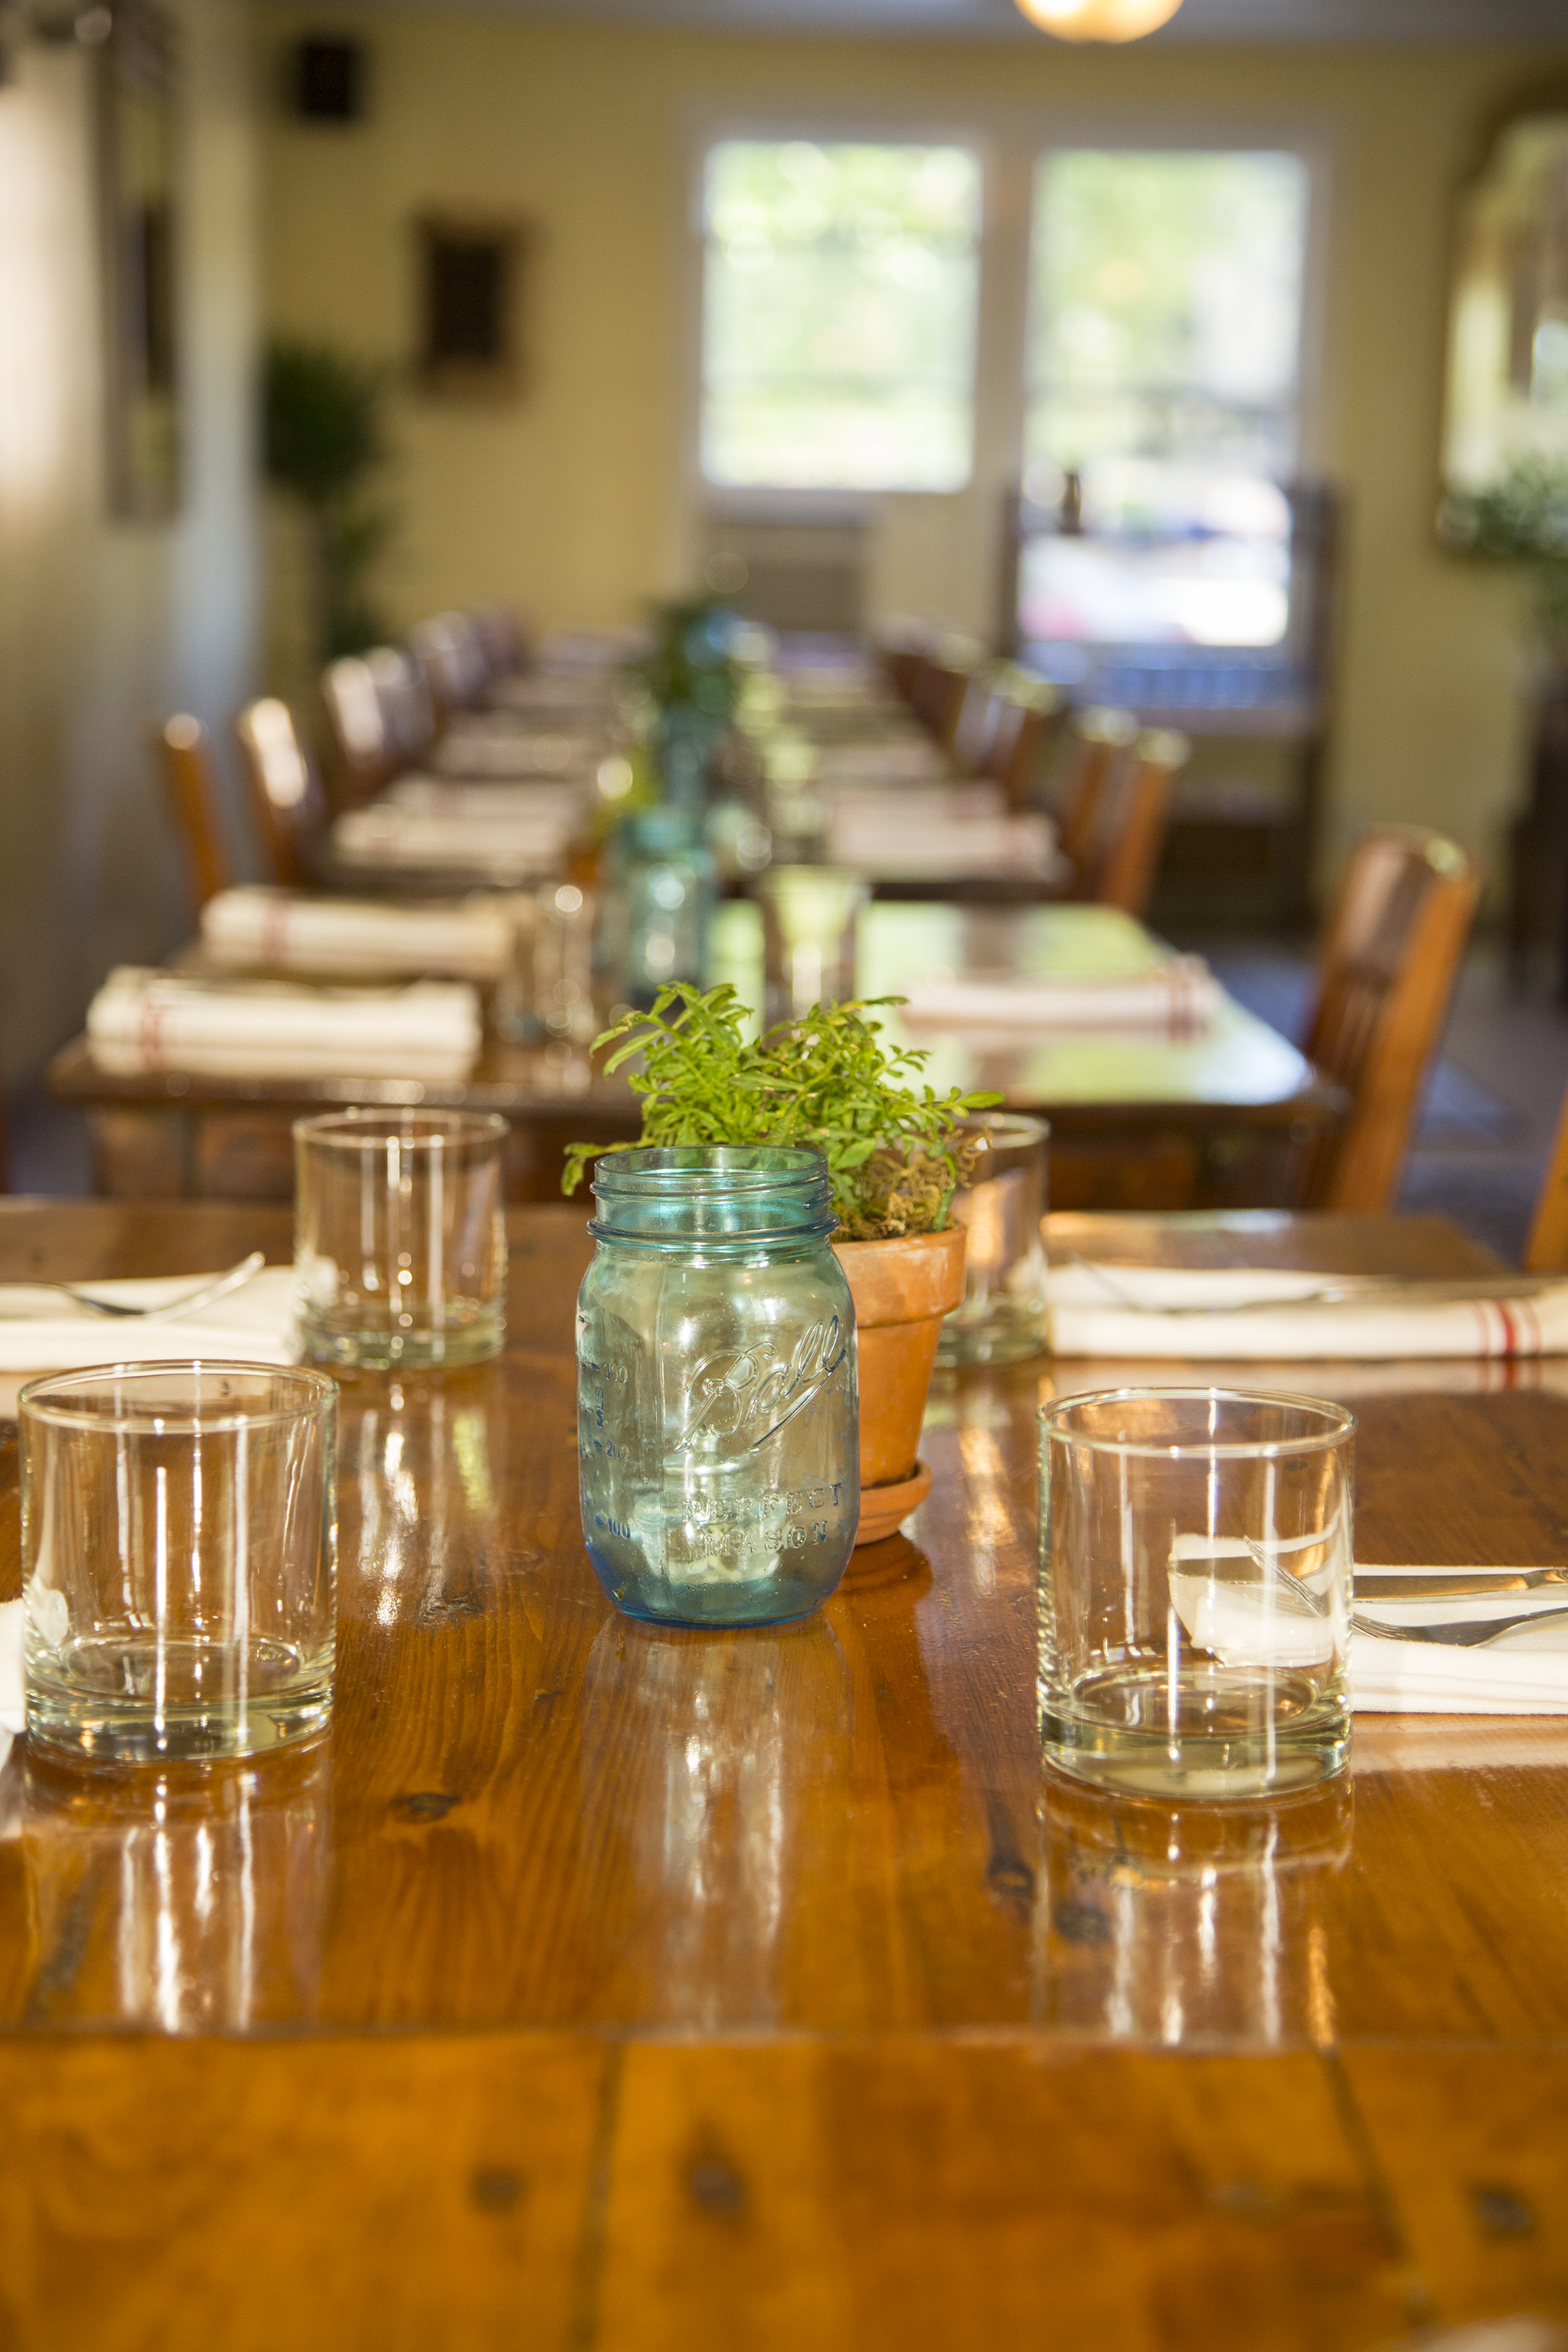 backyard_forestville_sonoma_county_restaurant_55_7962.png